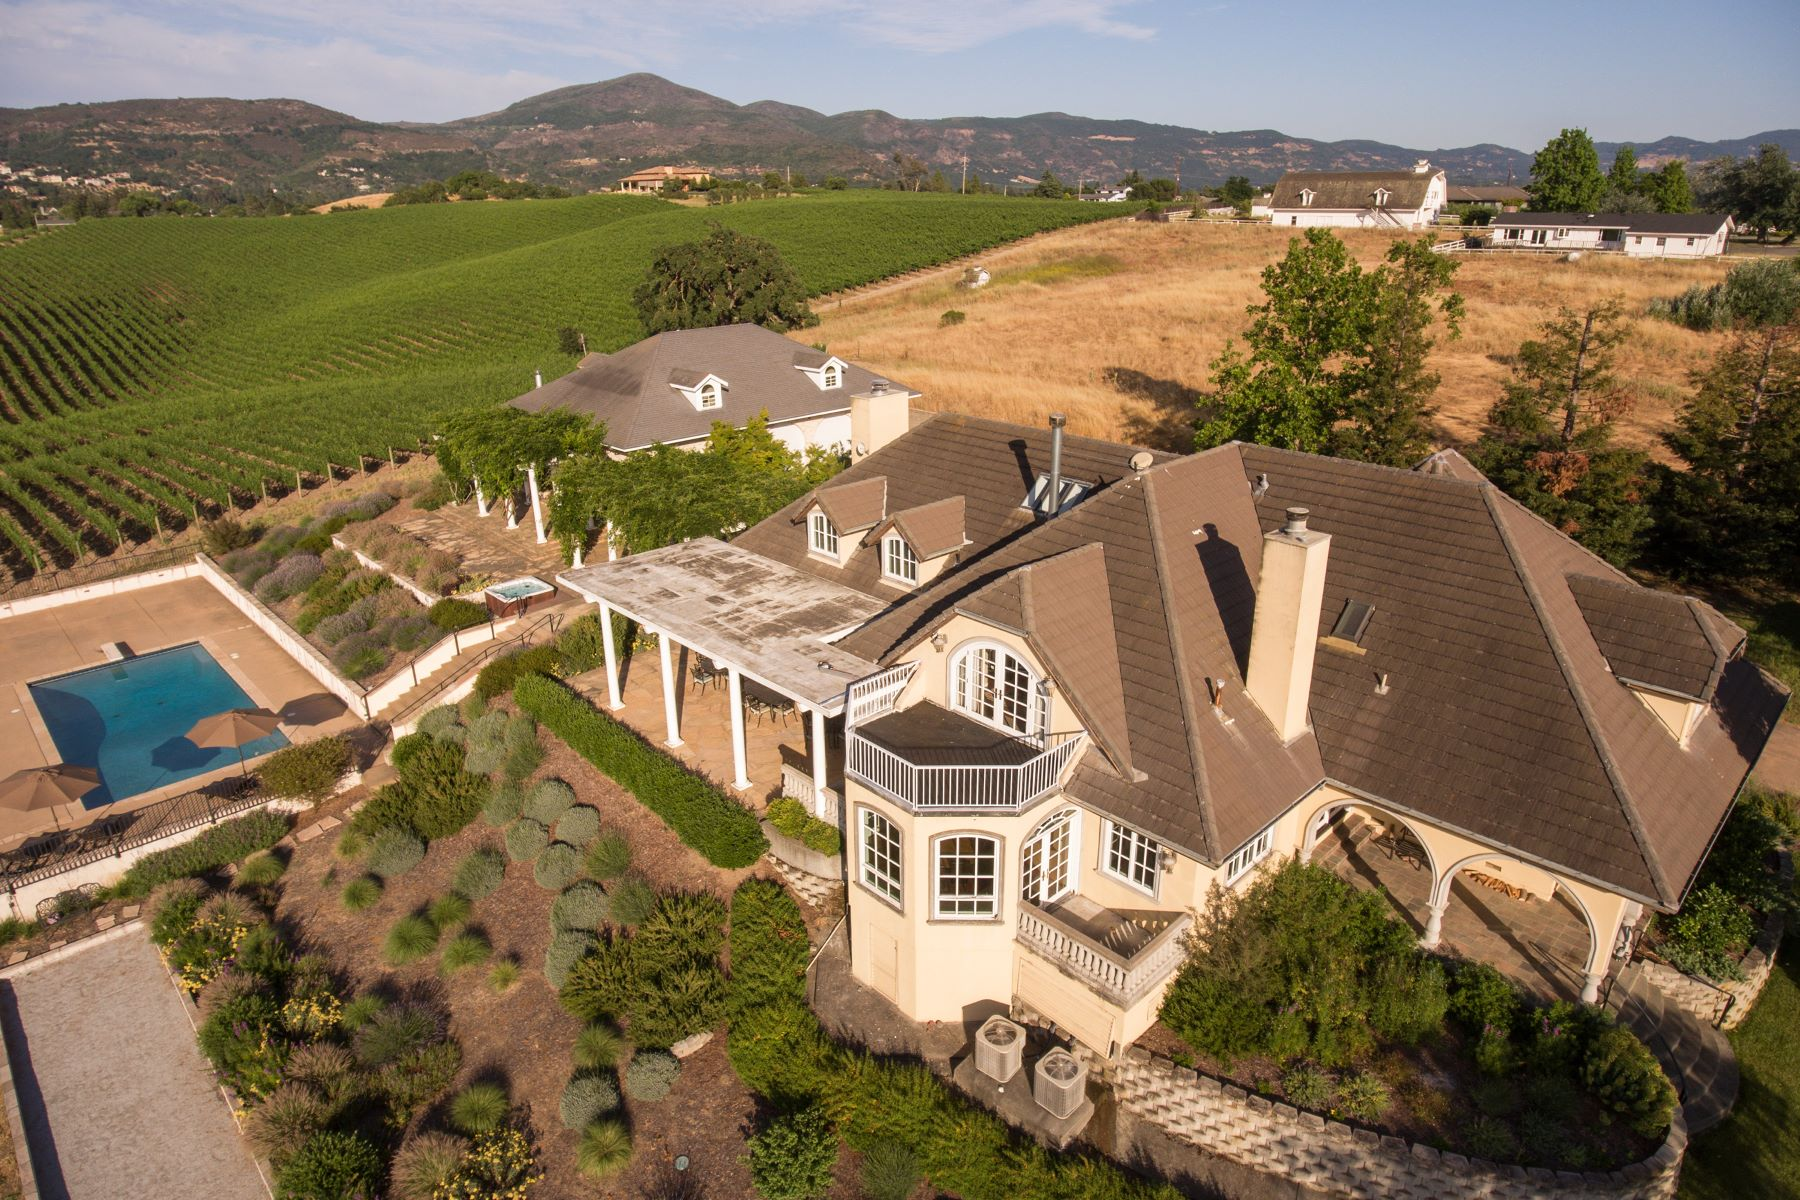 Maison unifamiliale pour l Vente à Napa Valley Vineyard Estate with Panoramic Views 1100 Hardman Avenue Napa, Californie, 94558 États-Unis